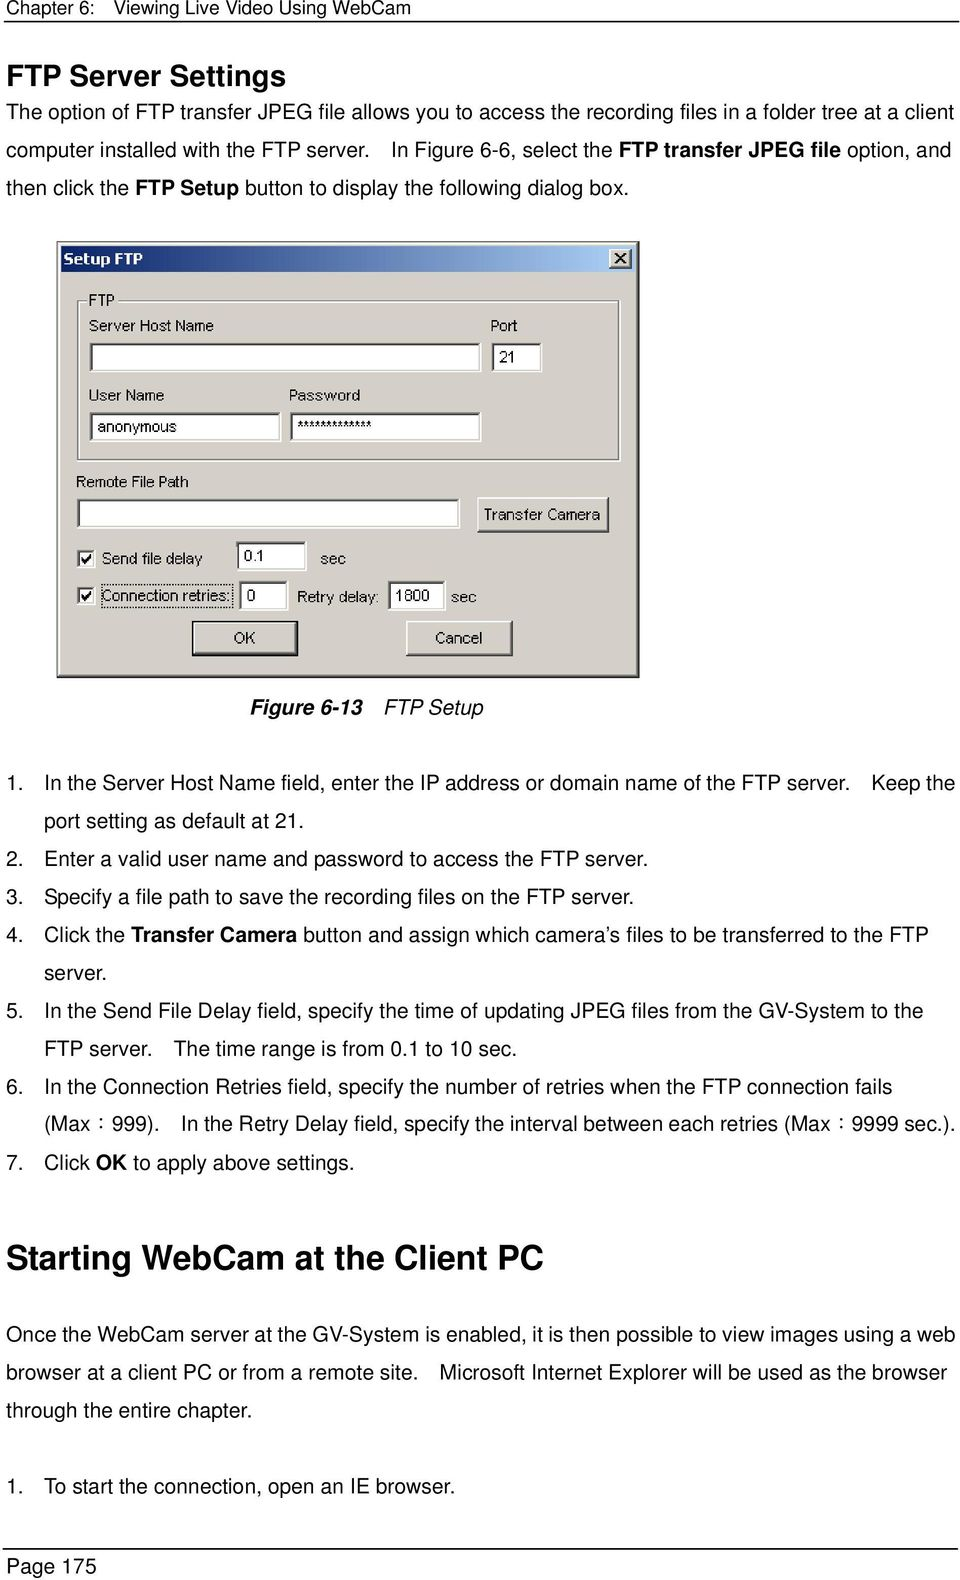 Viewing Live Video Using WebCam - PDF